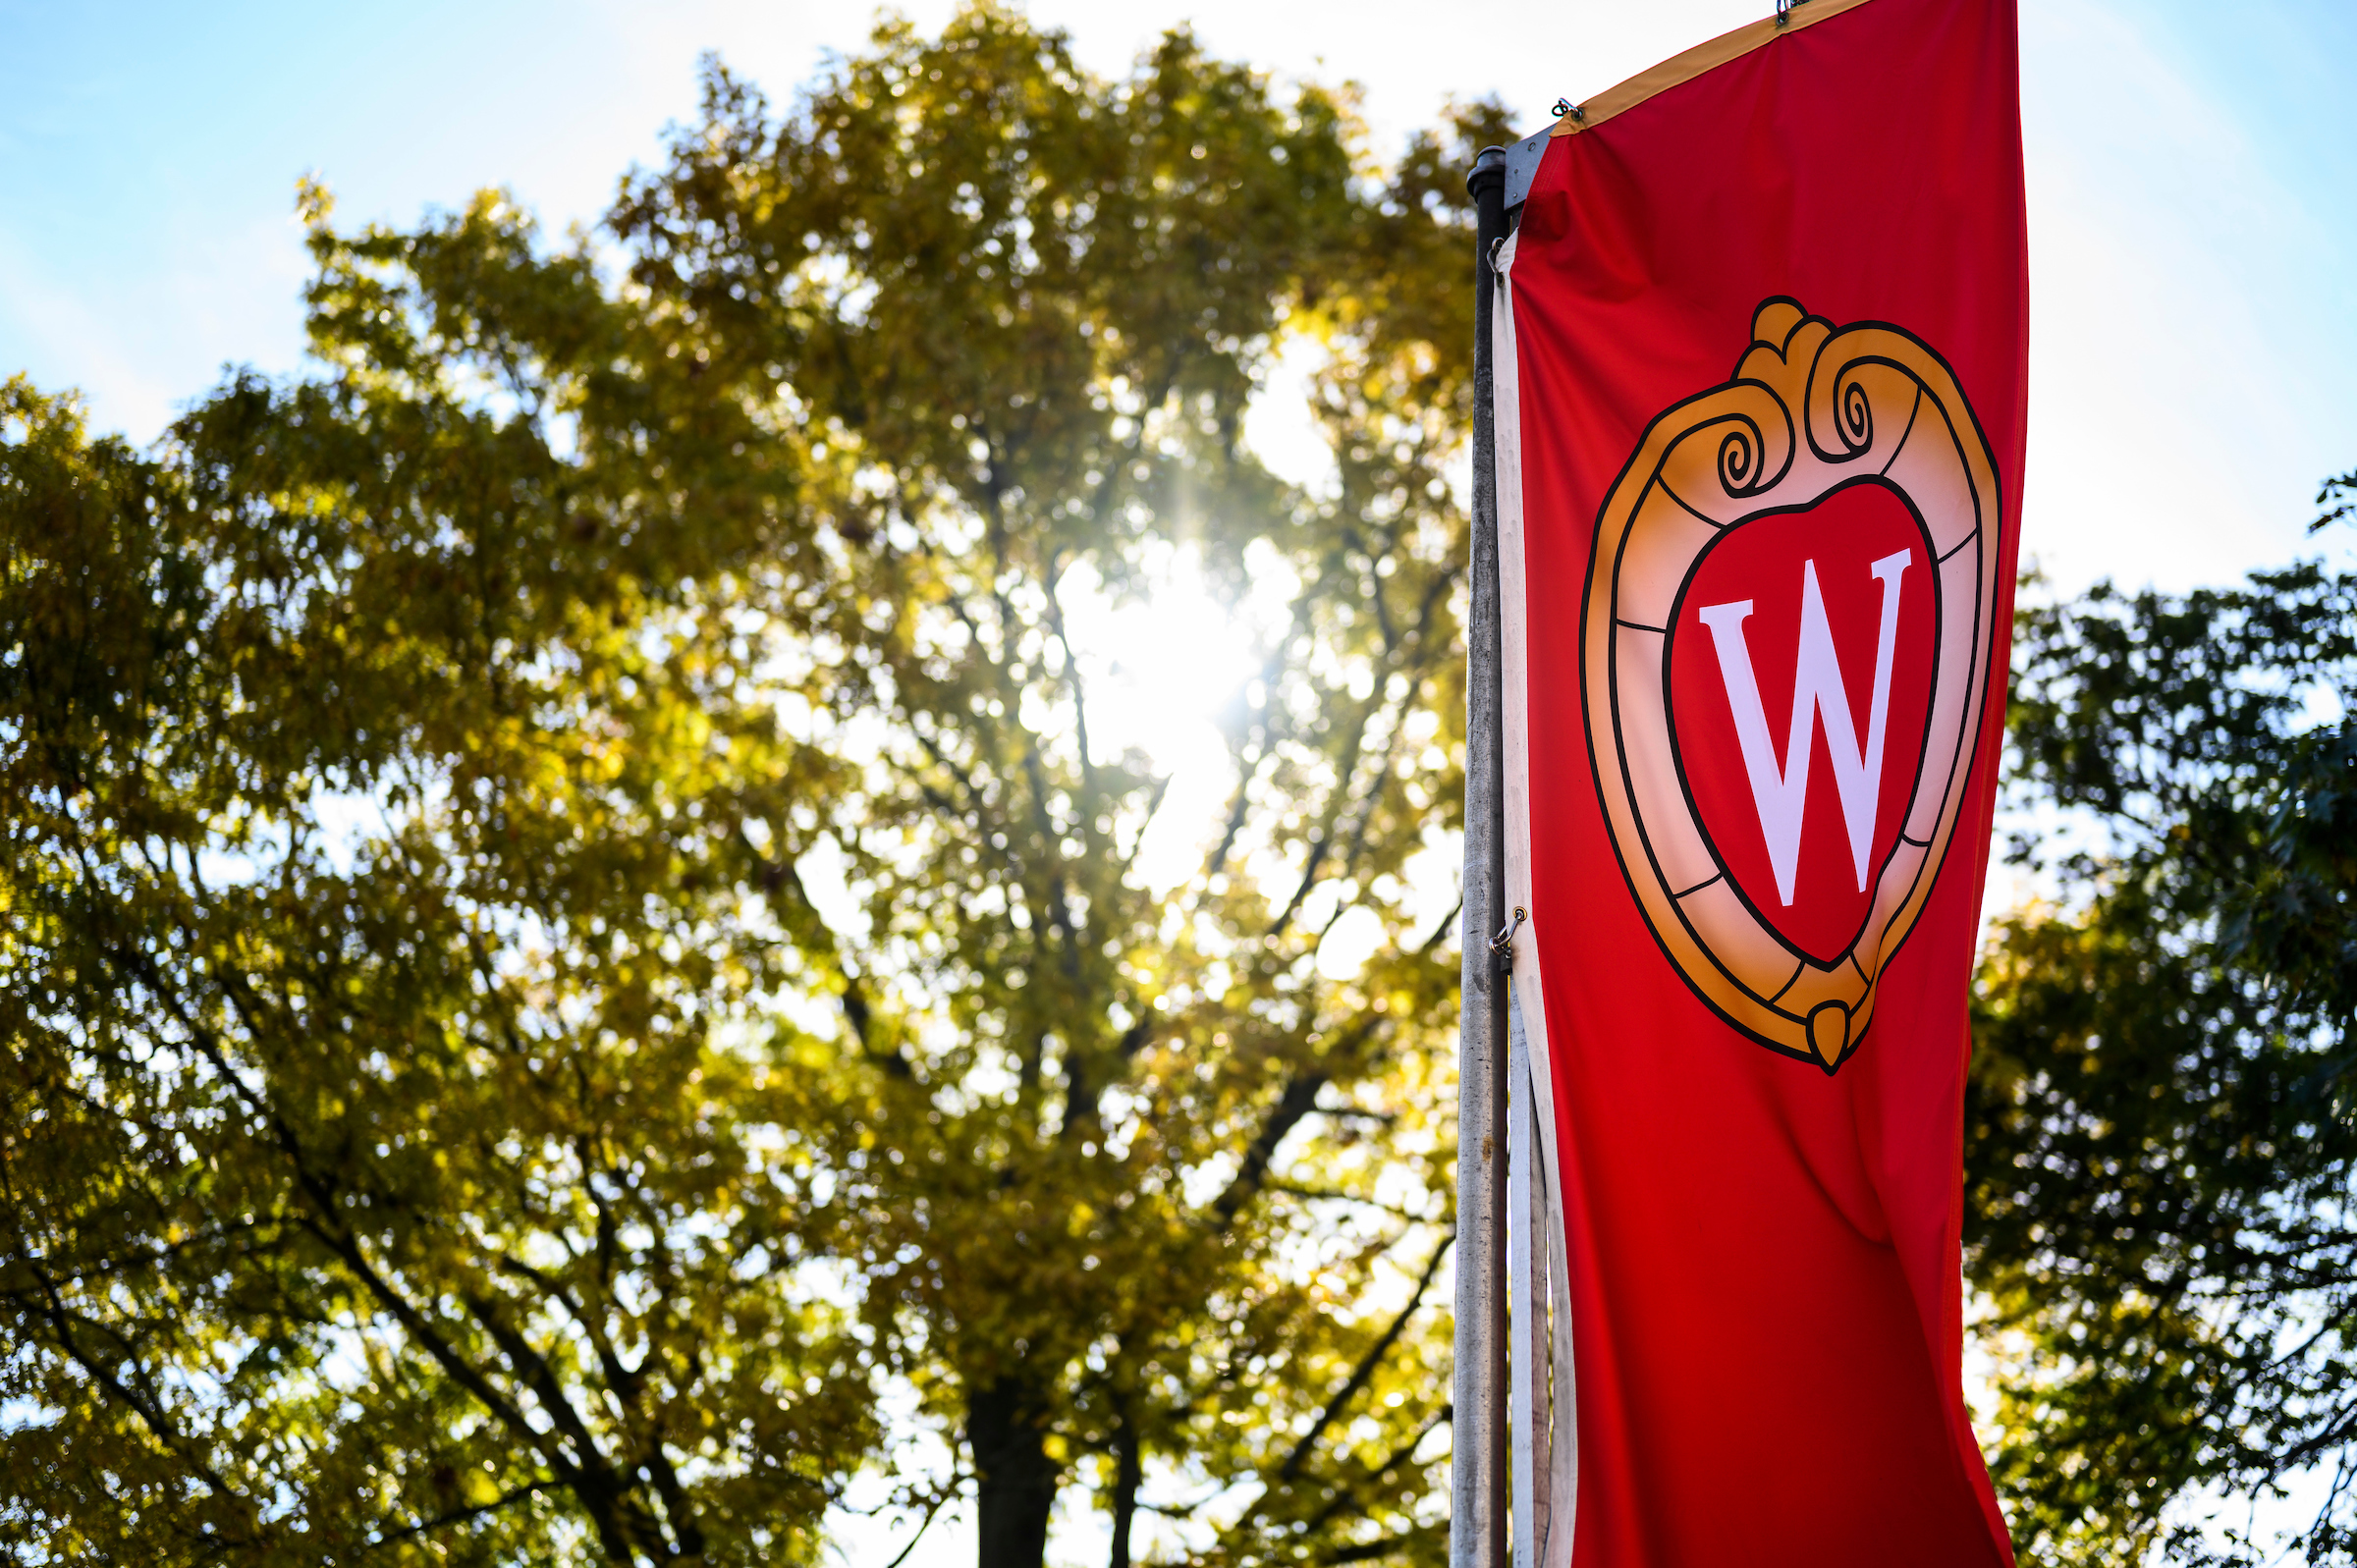 A W crest banner flutters in the wind on Bascom Hill at the University of Wisconsin-Madison during autumn on Oct. 18, 2019.